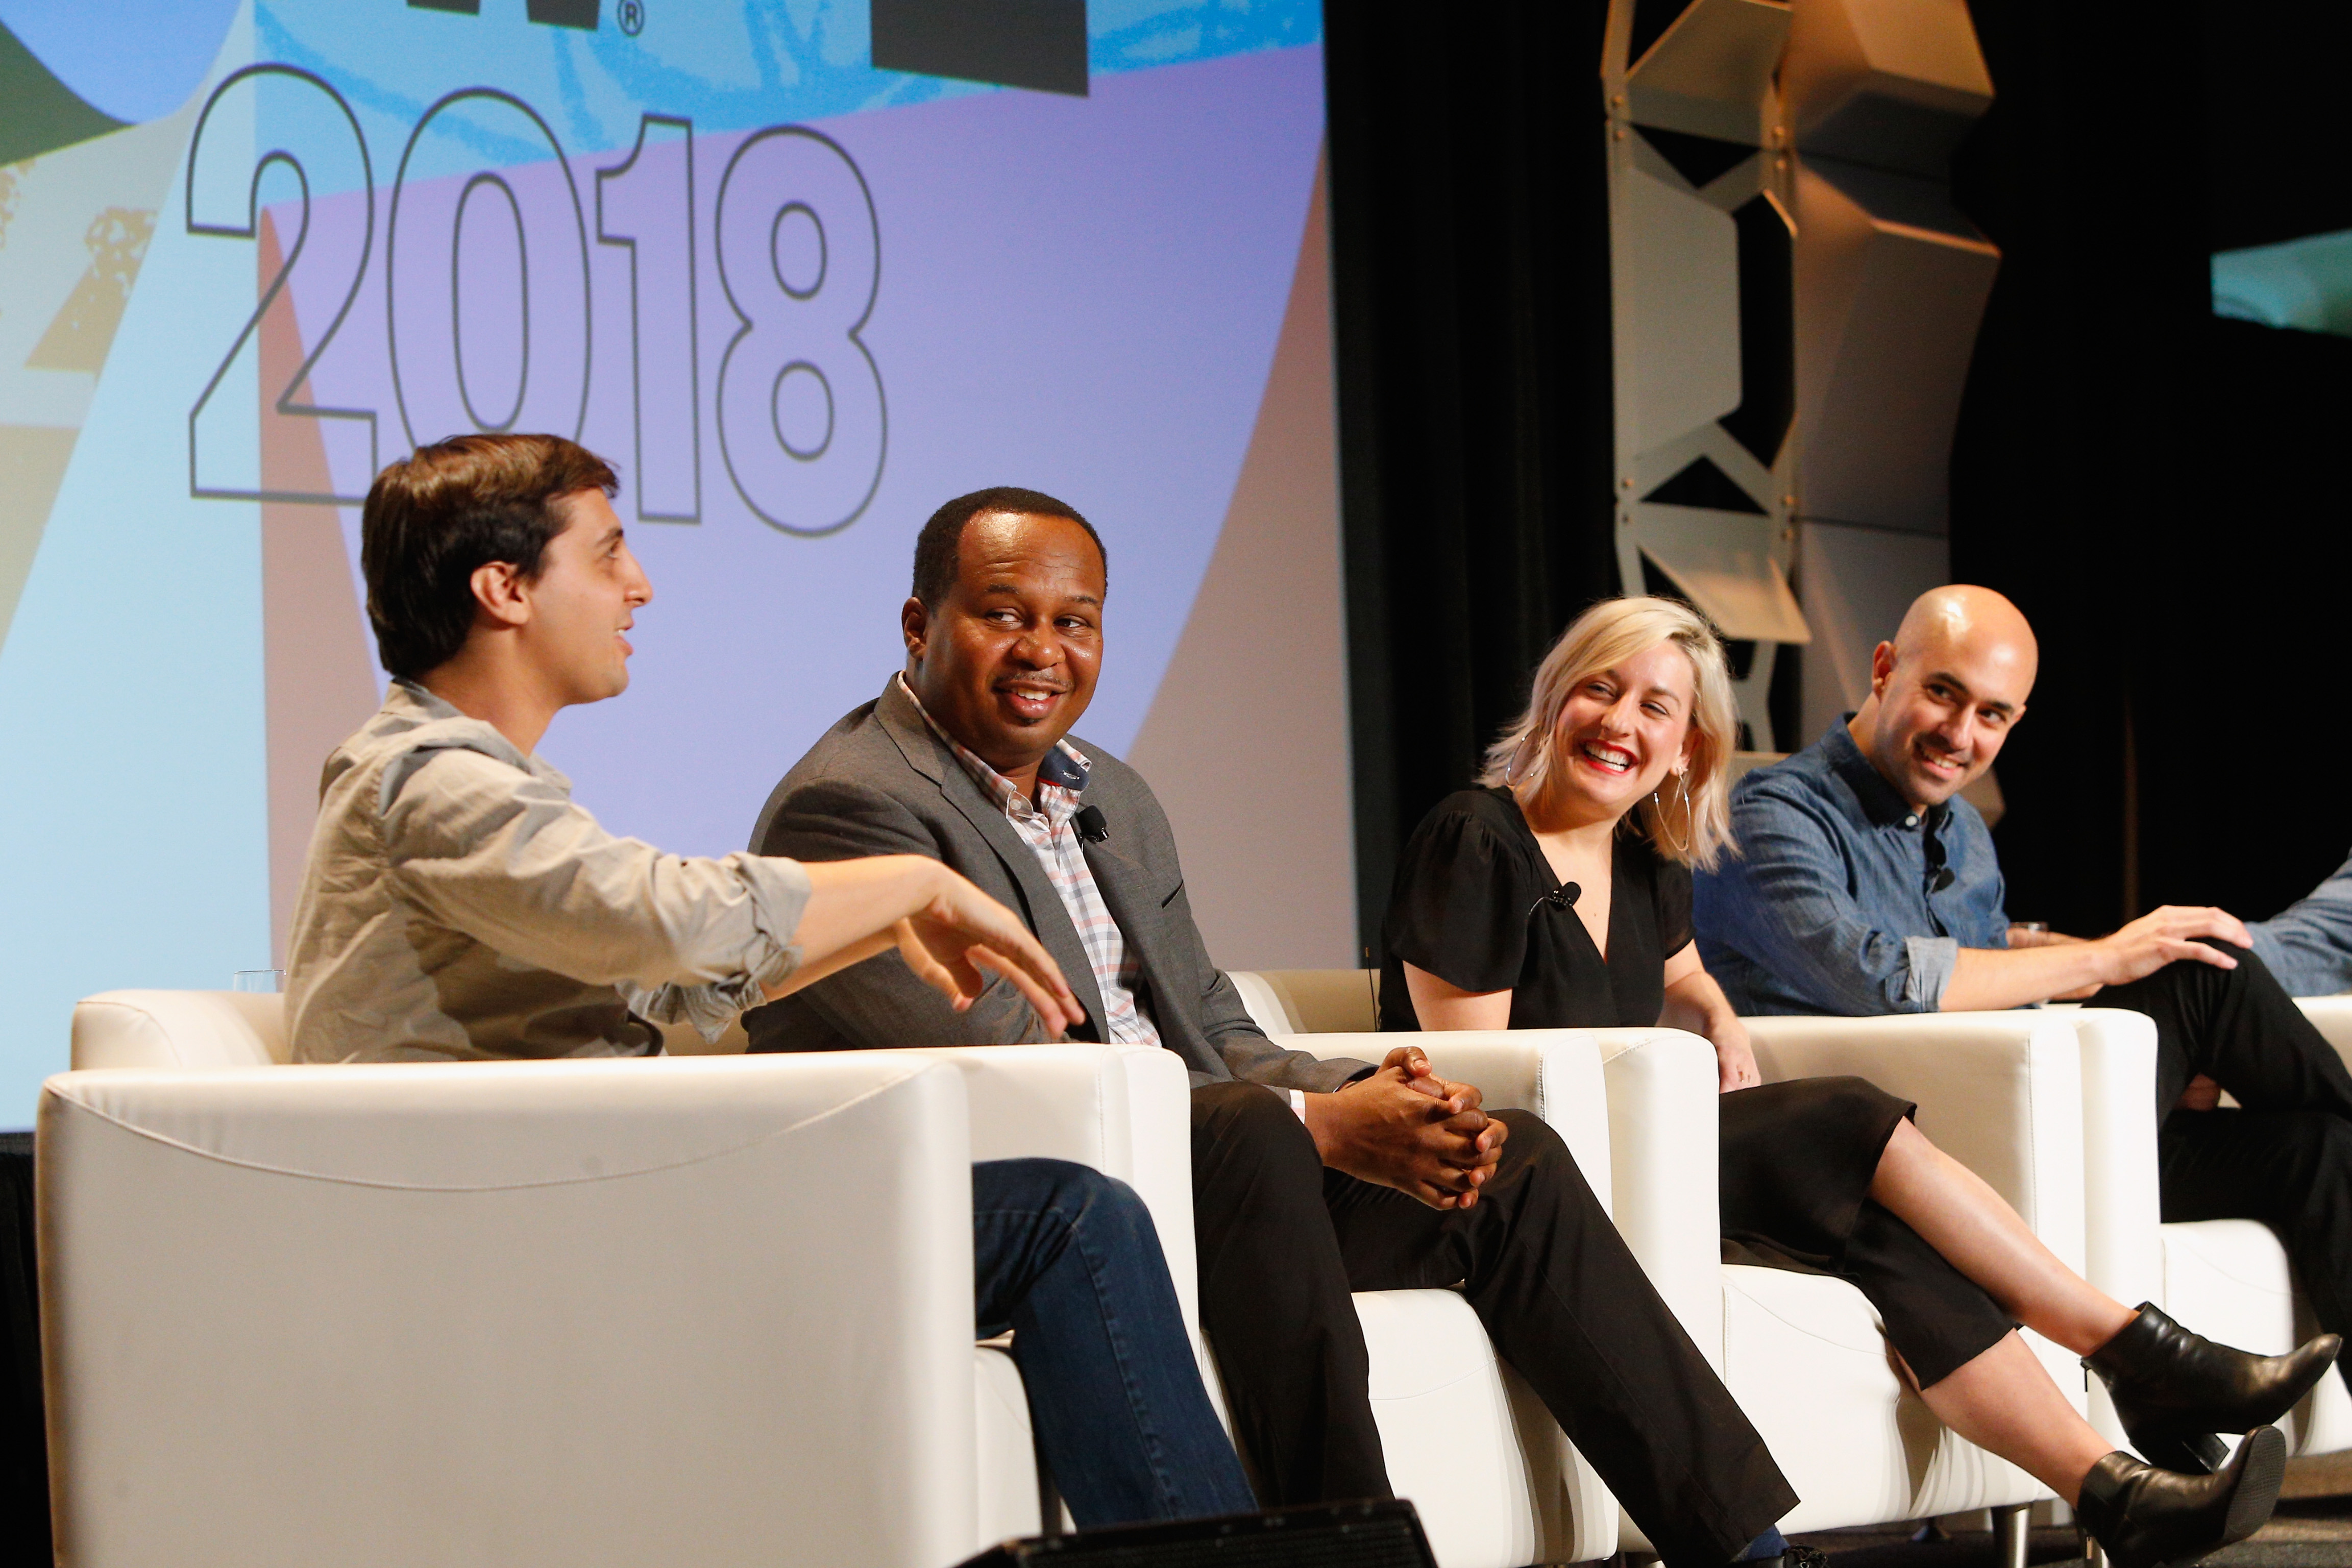 (L-R) Matt Negrin, Roy Wood Jr., Jocelyn Conn and Ramin Hedayati speak onstage at Real Fake News Never Stops: Convo with The Daily Show during SXSW at Austin Convention Center on March 10, 2018 in Austin, Texas. (Photo by Steve Rogers Photography/Getty Images for SXSW)